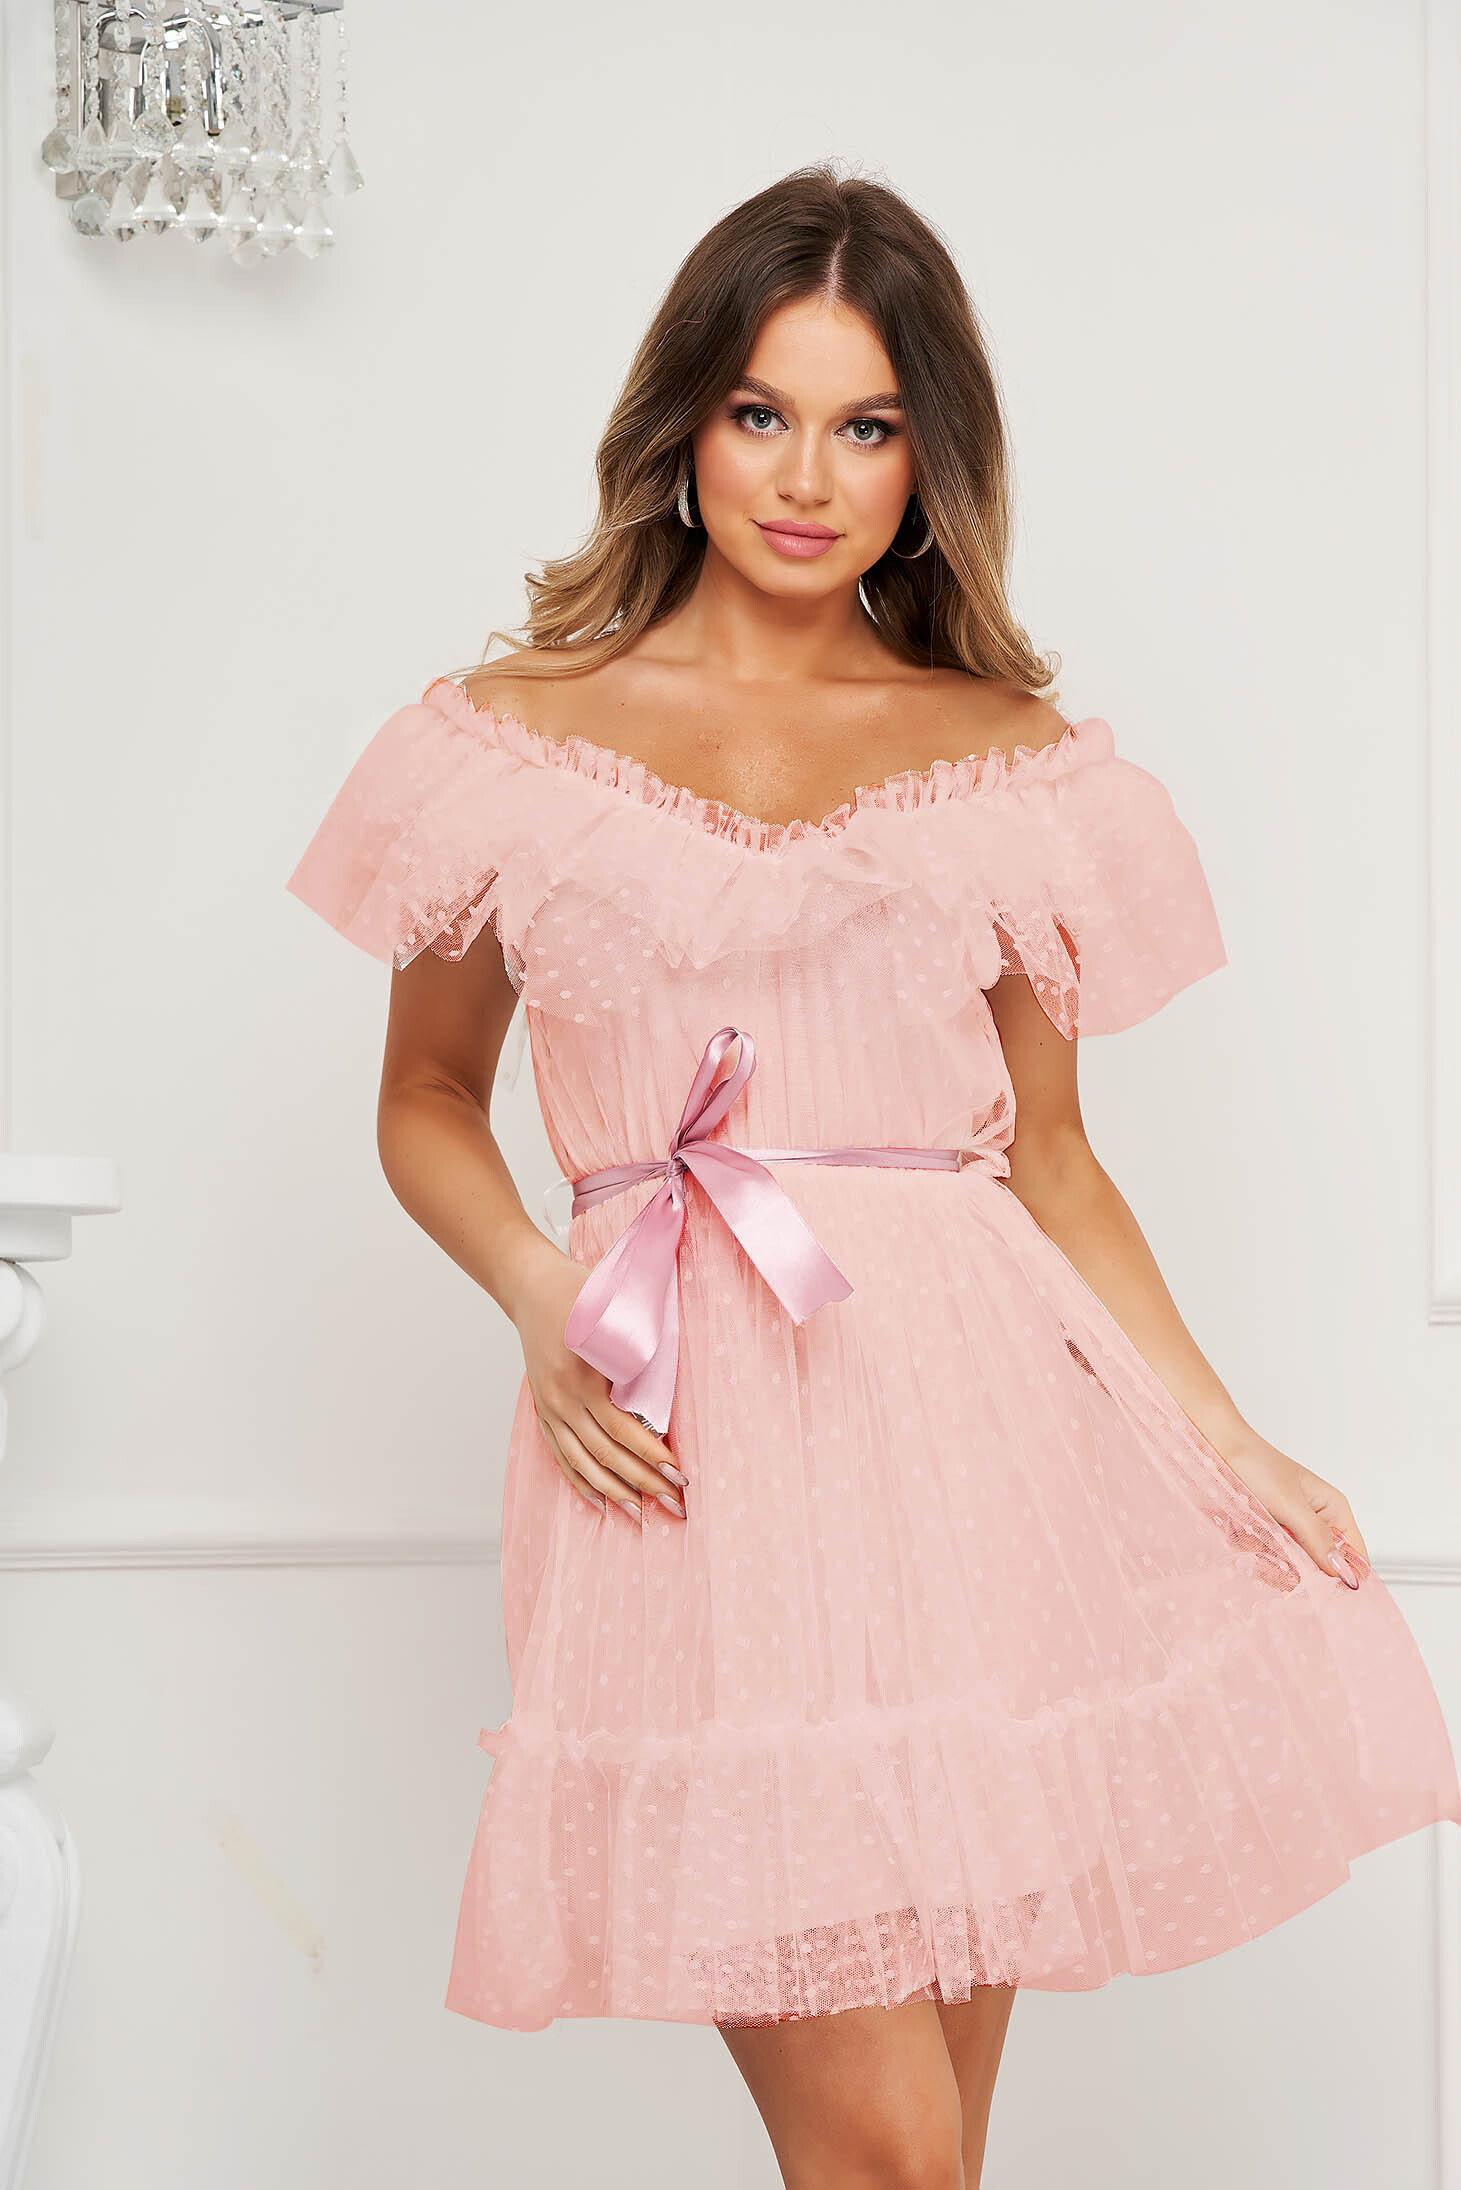 Lightpink dress from tulle cloche with elastic waist plumeti on the shoulders accessorized with tied waistband occasional